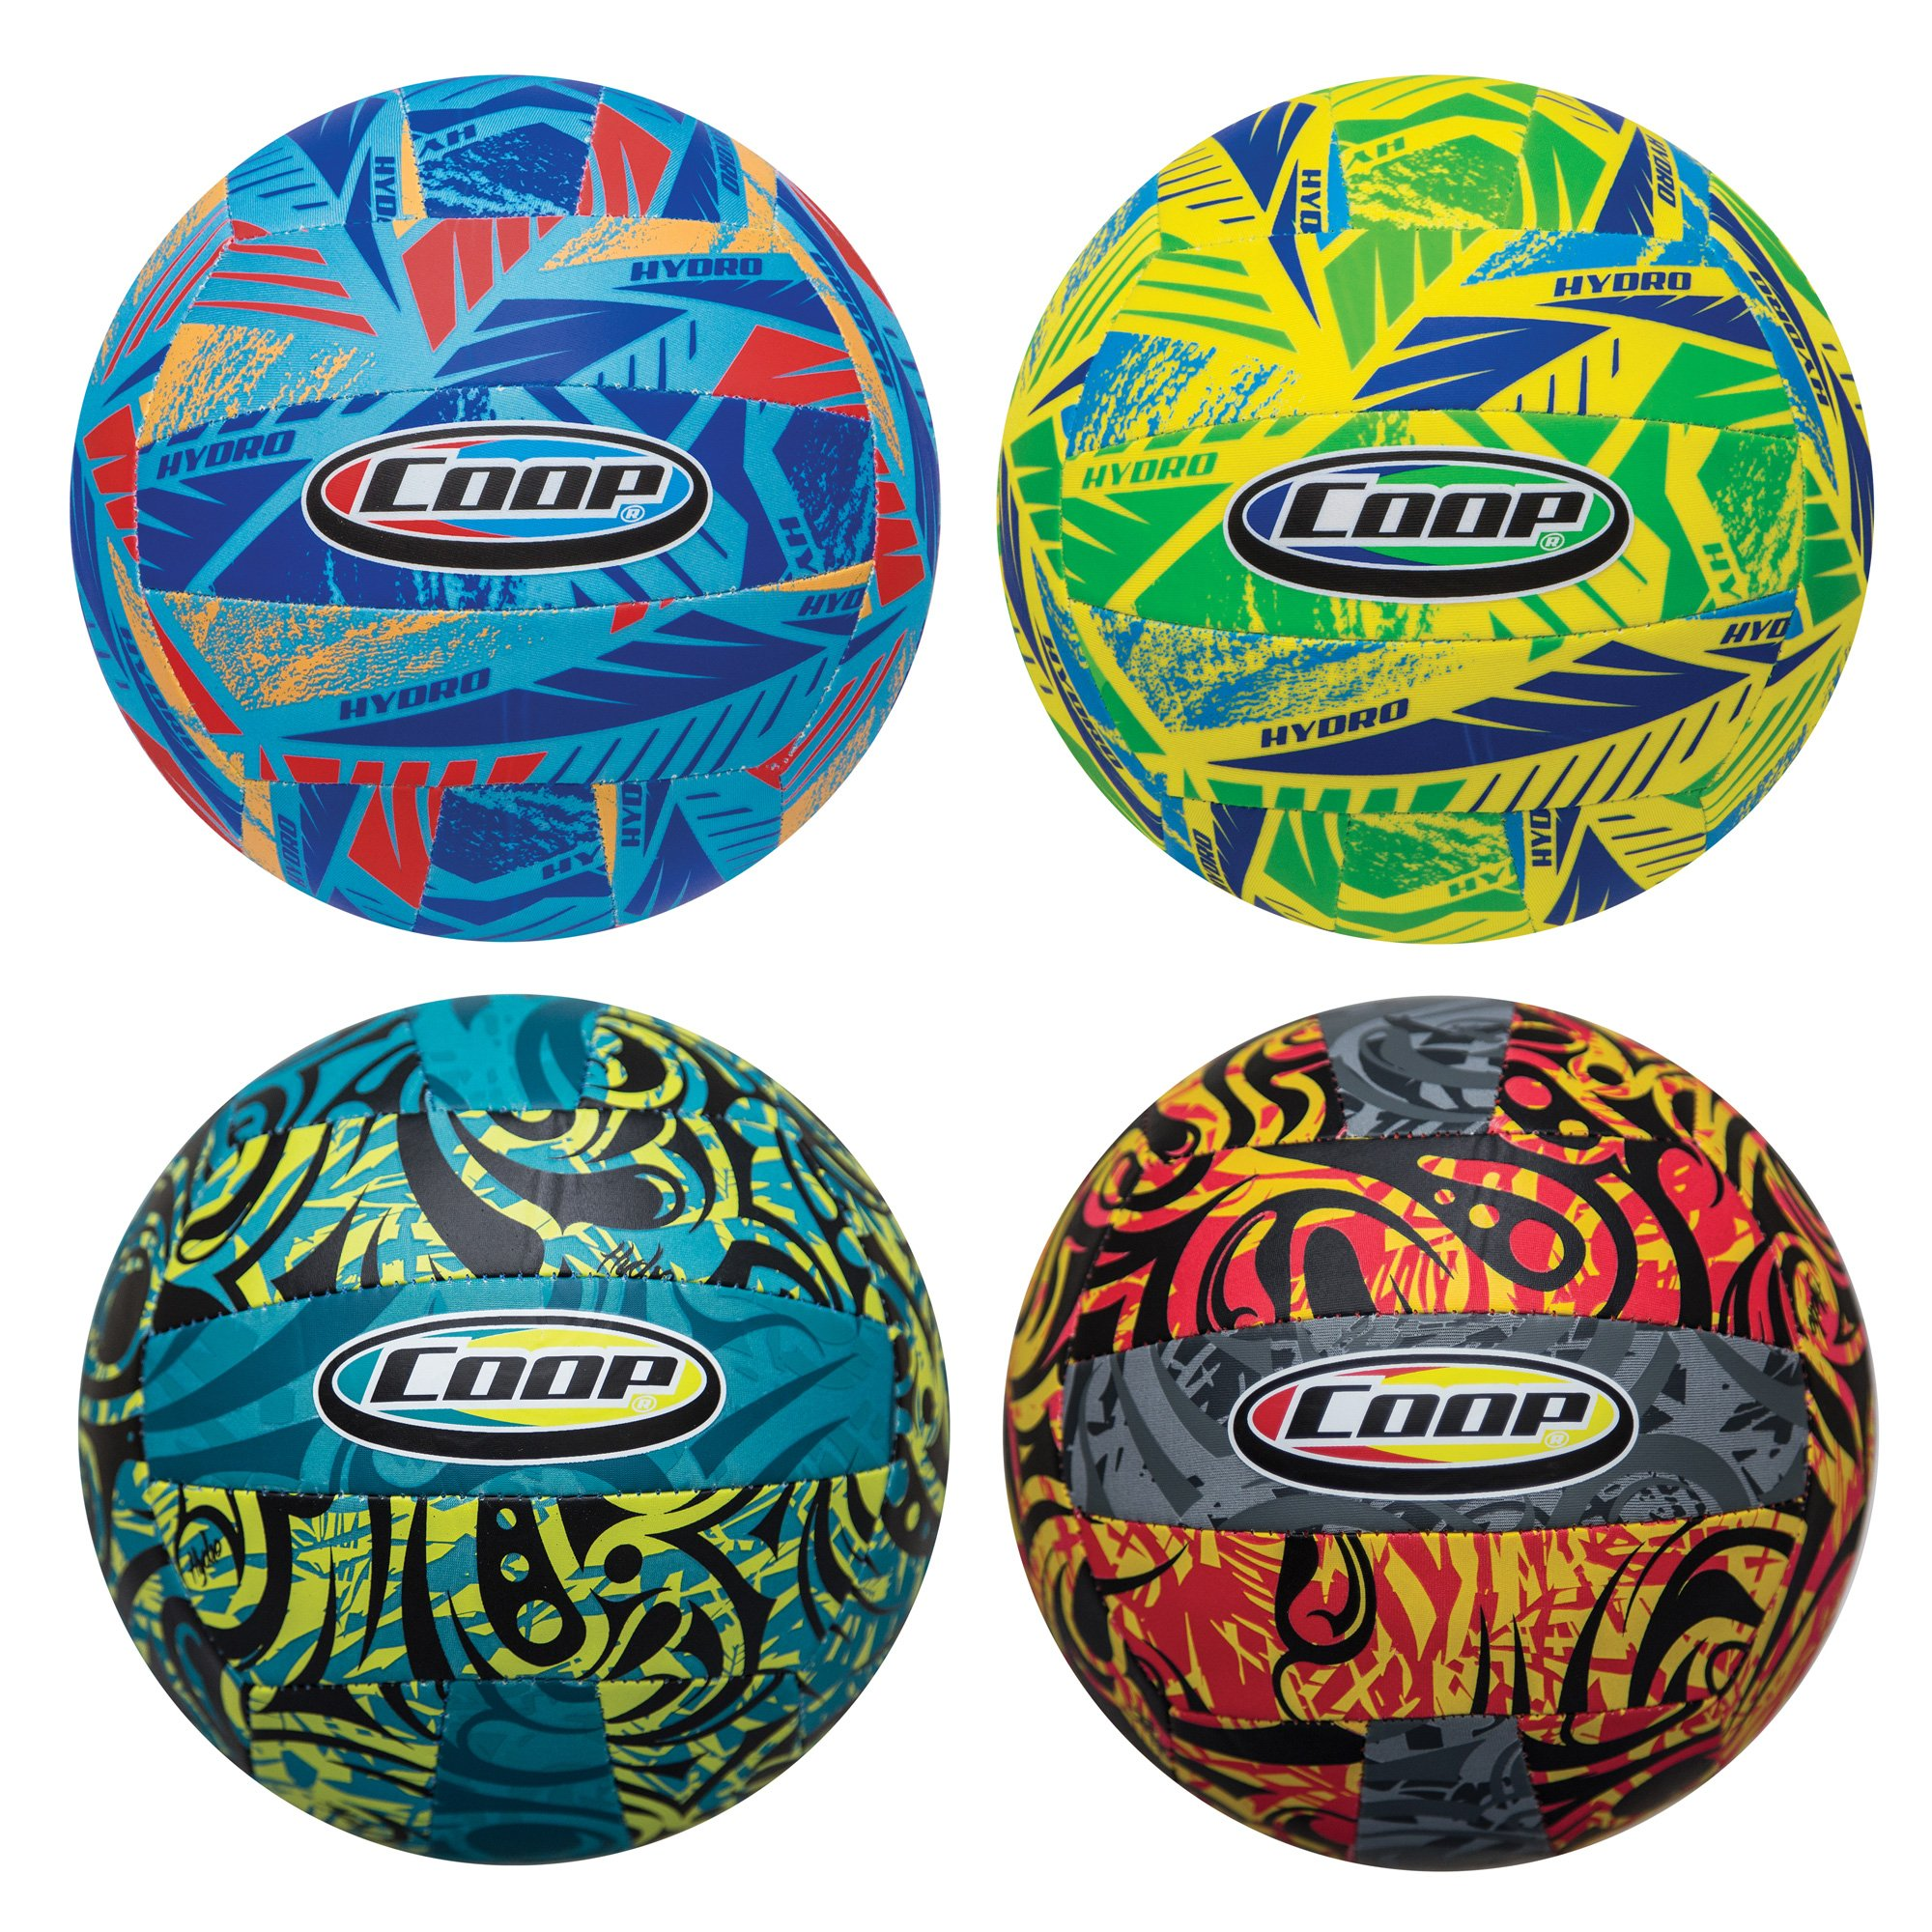 COOP Hydro Volleyball, Colors May Vary